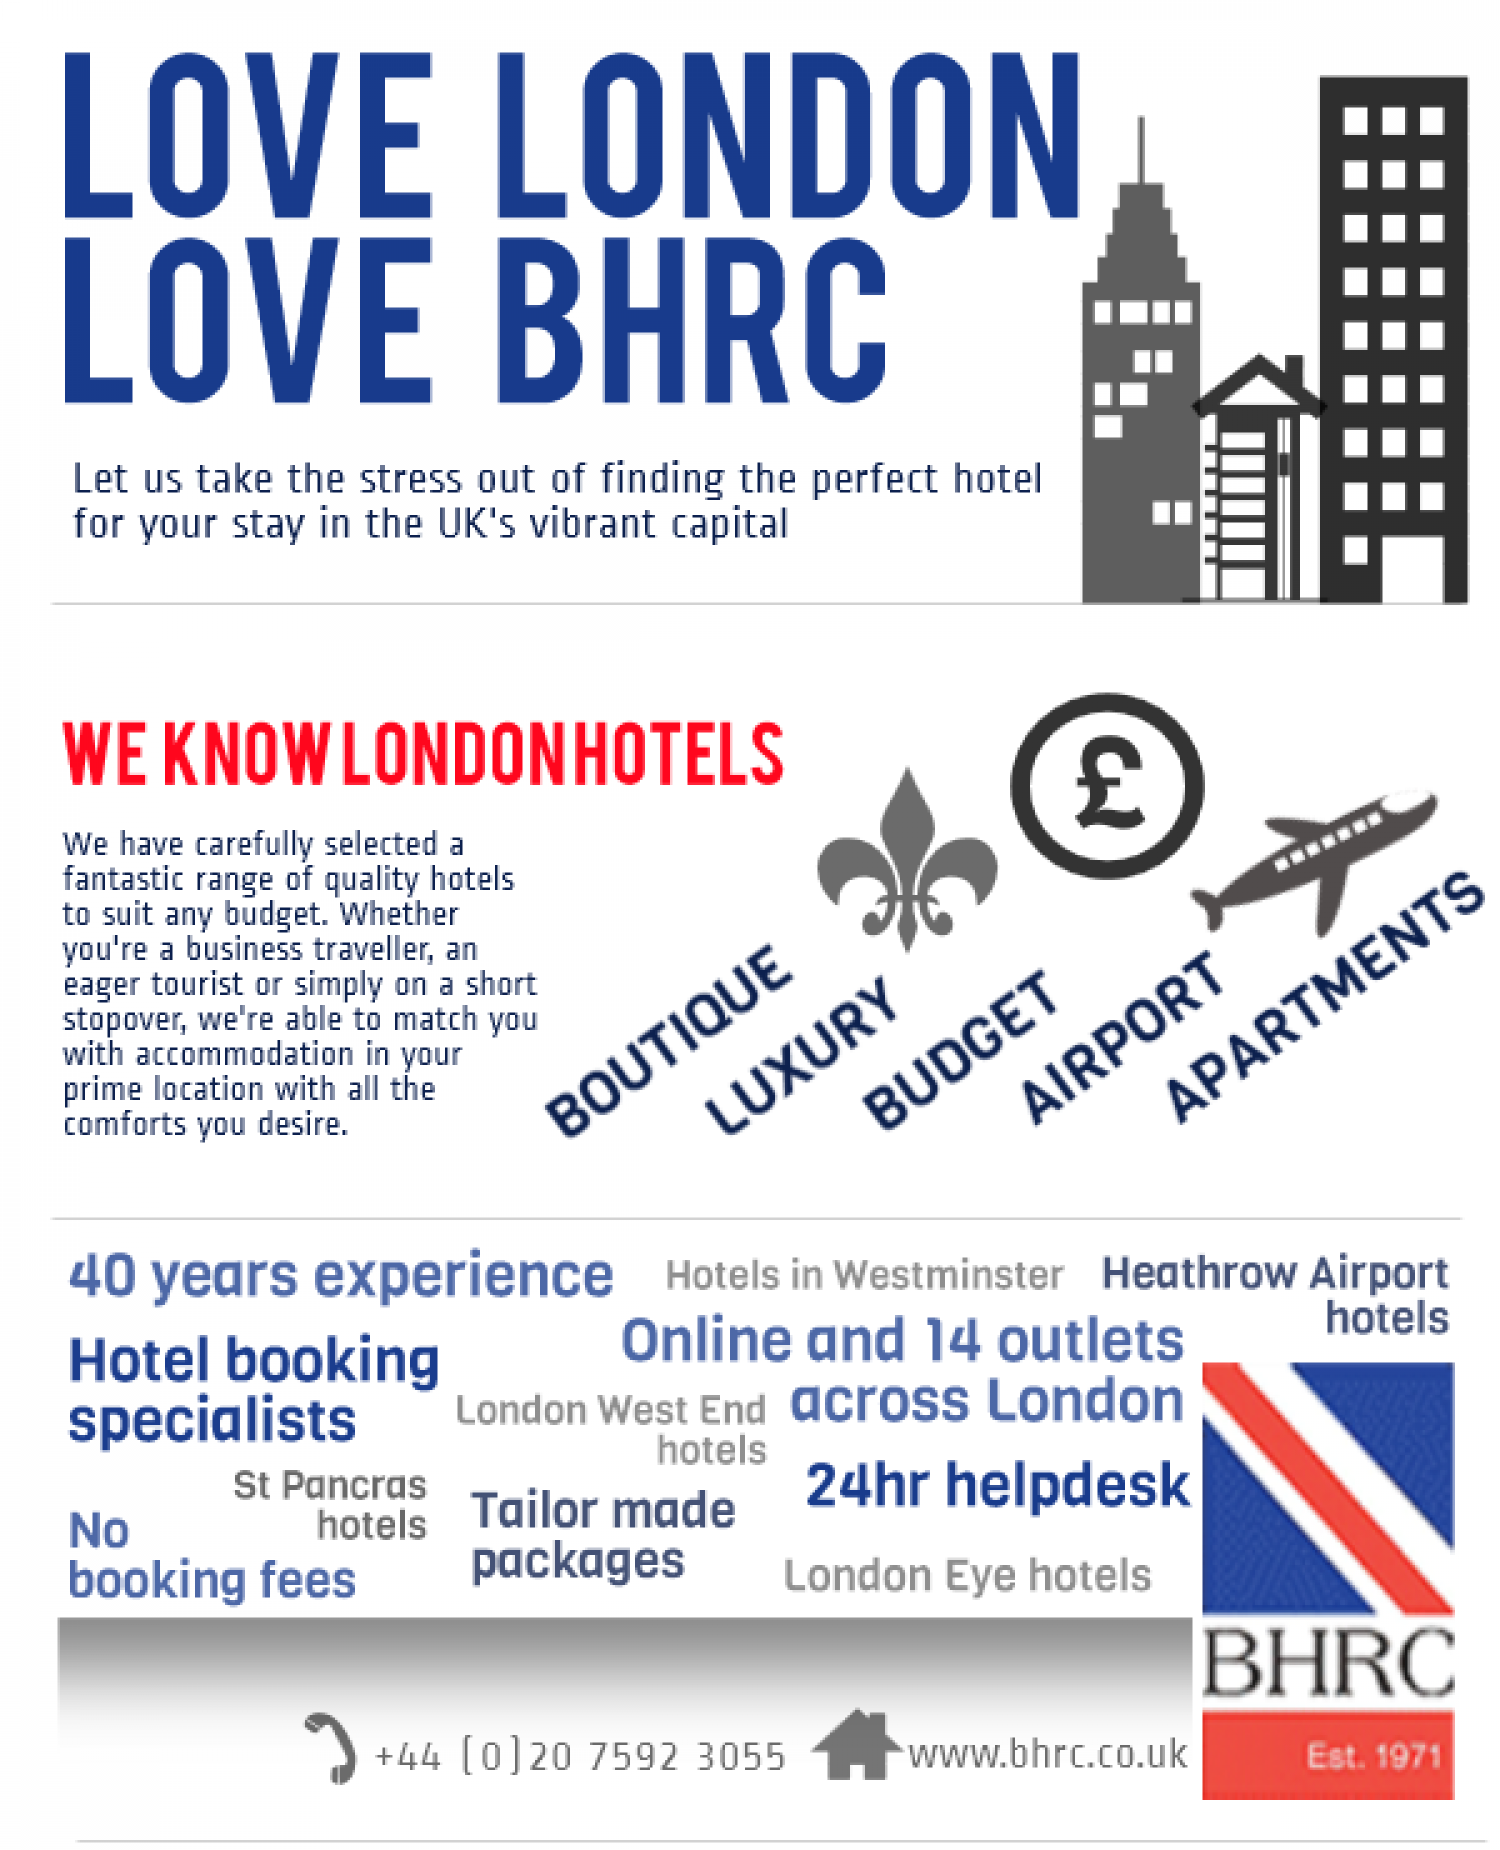 Love London Love BHRC Infographic